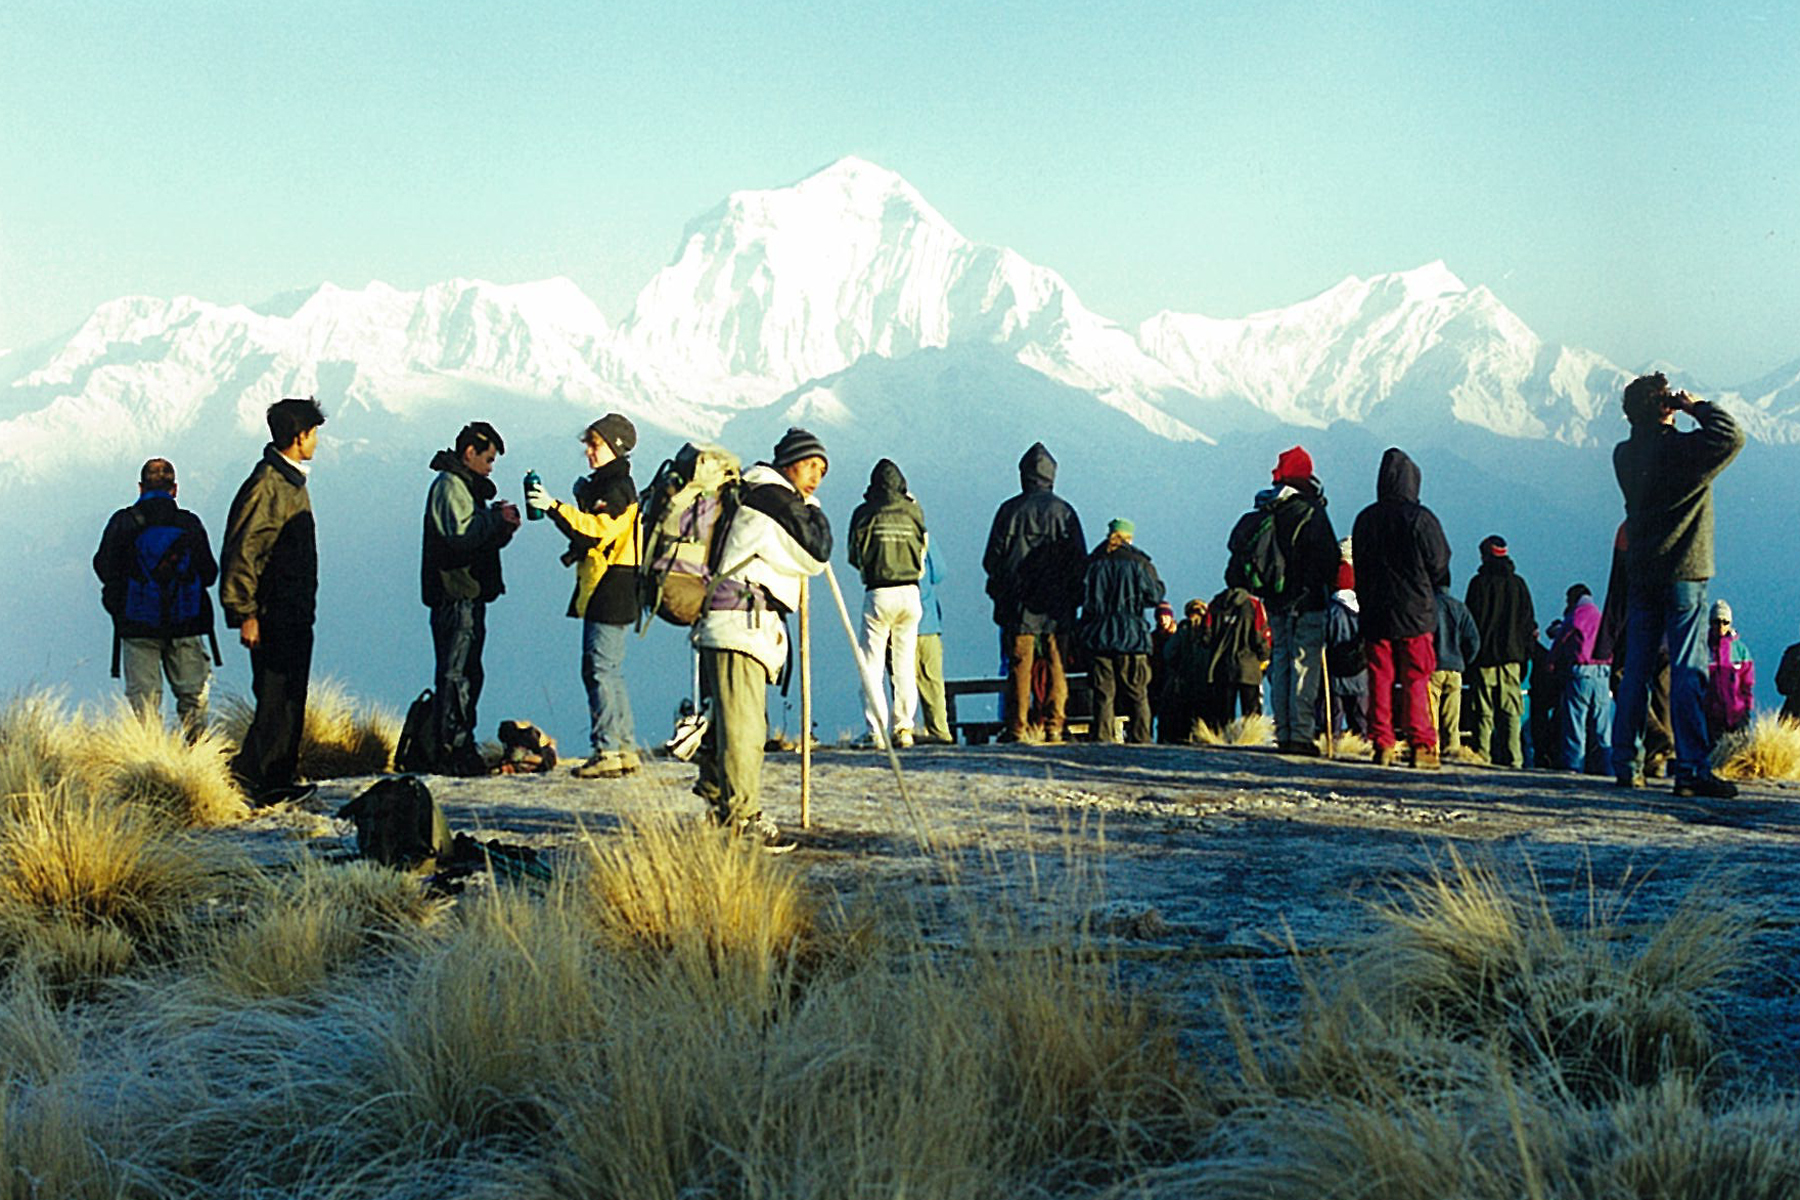 Tourist Hordes Ghorepani Poon Hill Trekking Annapurna Base Camp Trek ABC Sanctuary Hike Hiking Nepal Mountains Himalayas